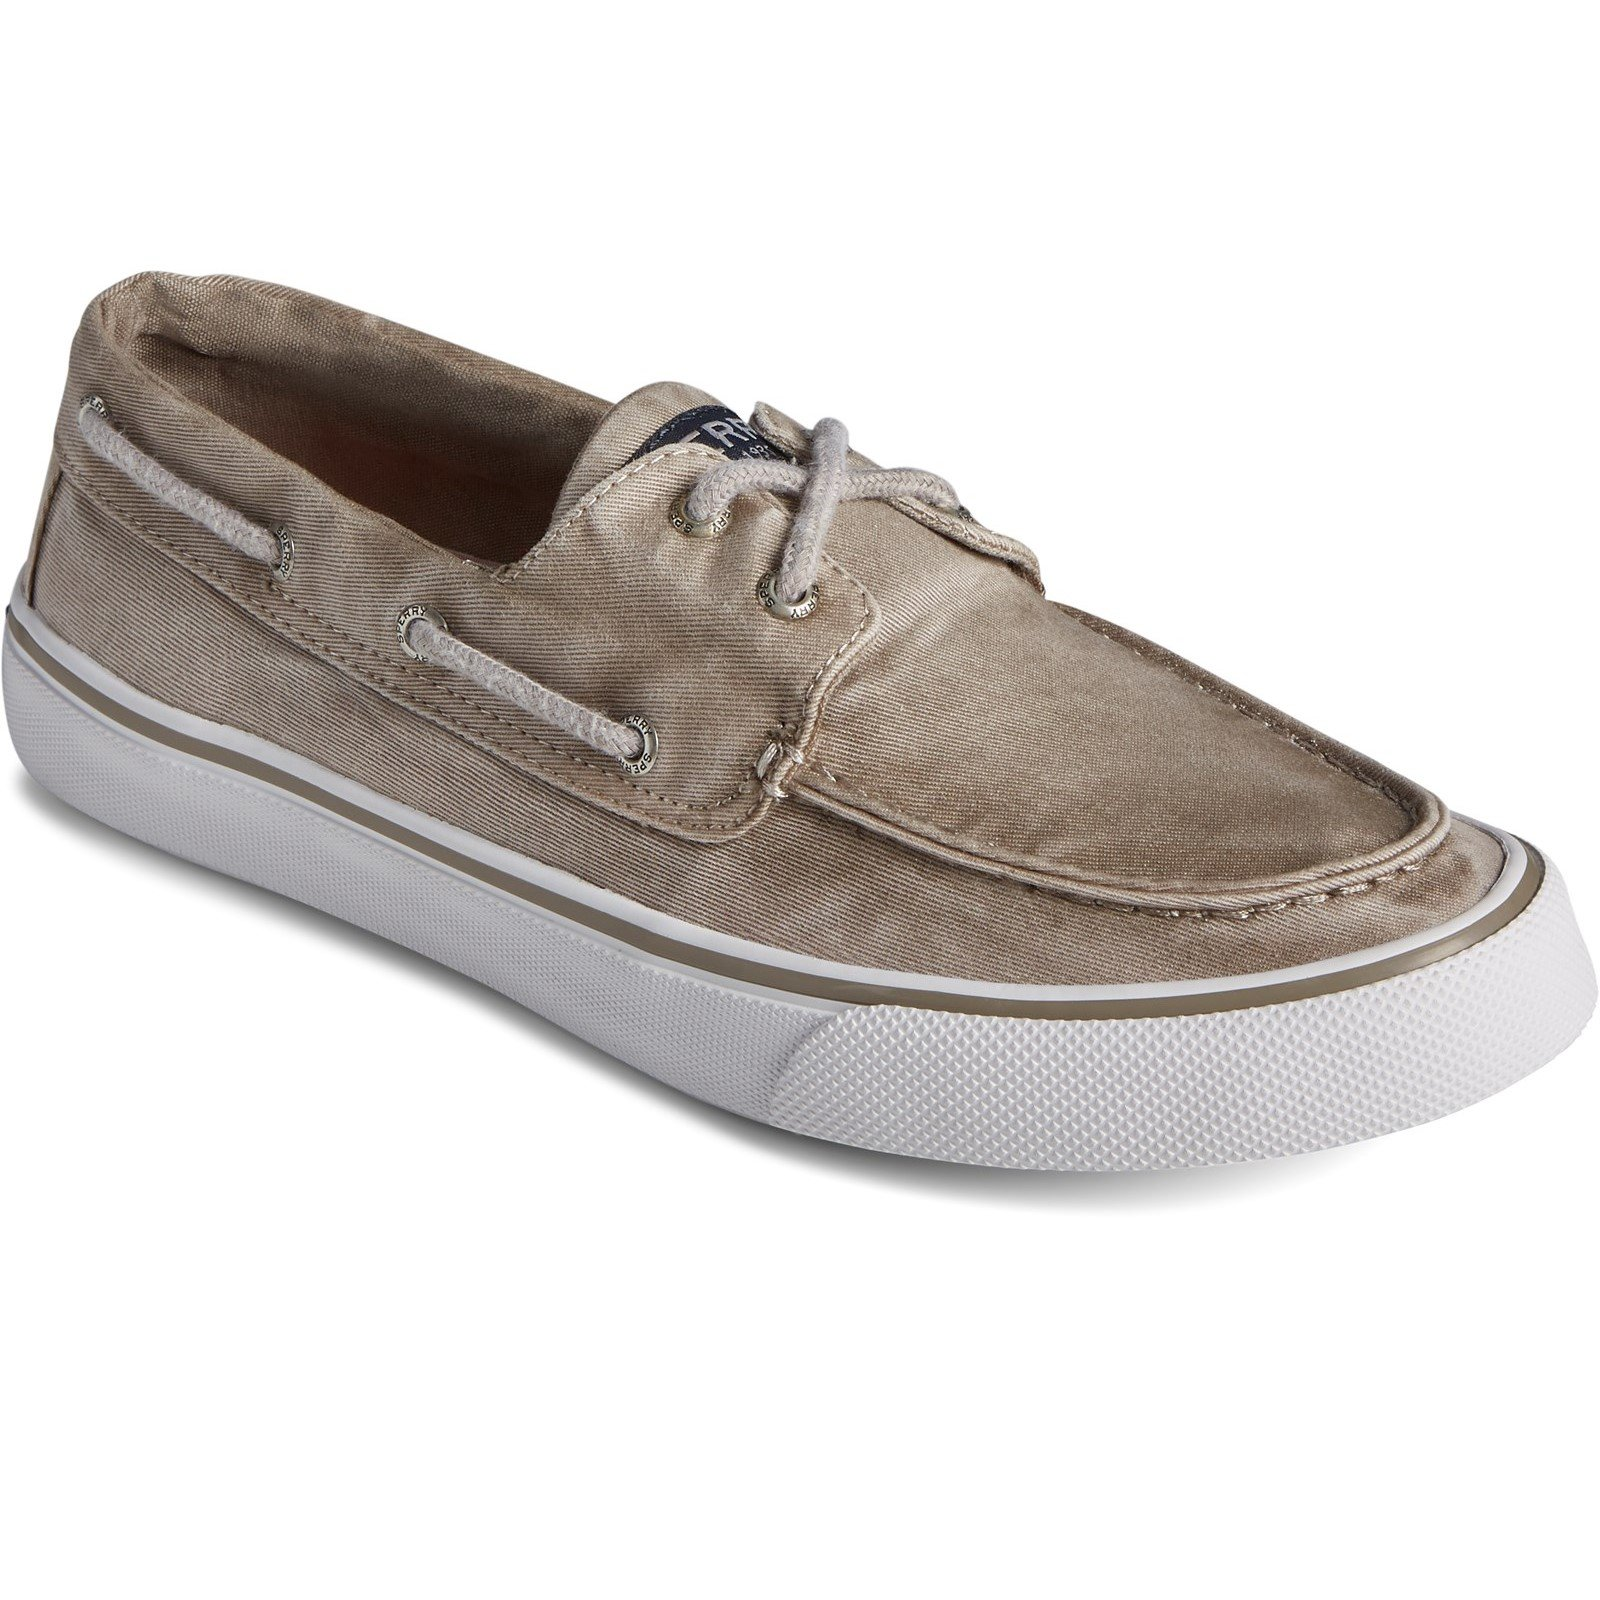 Sperry Men's Bahama II Boat Shoe Various Colours 32923 - Taupe 7